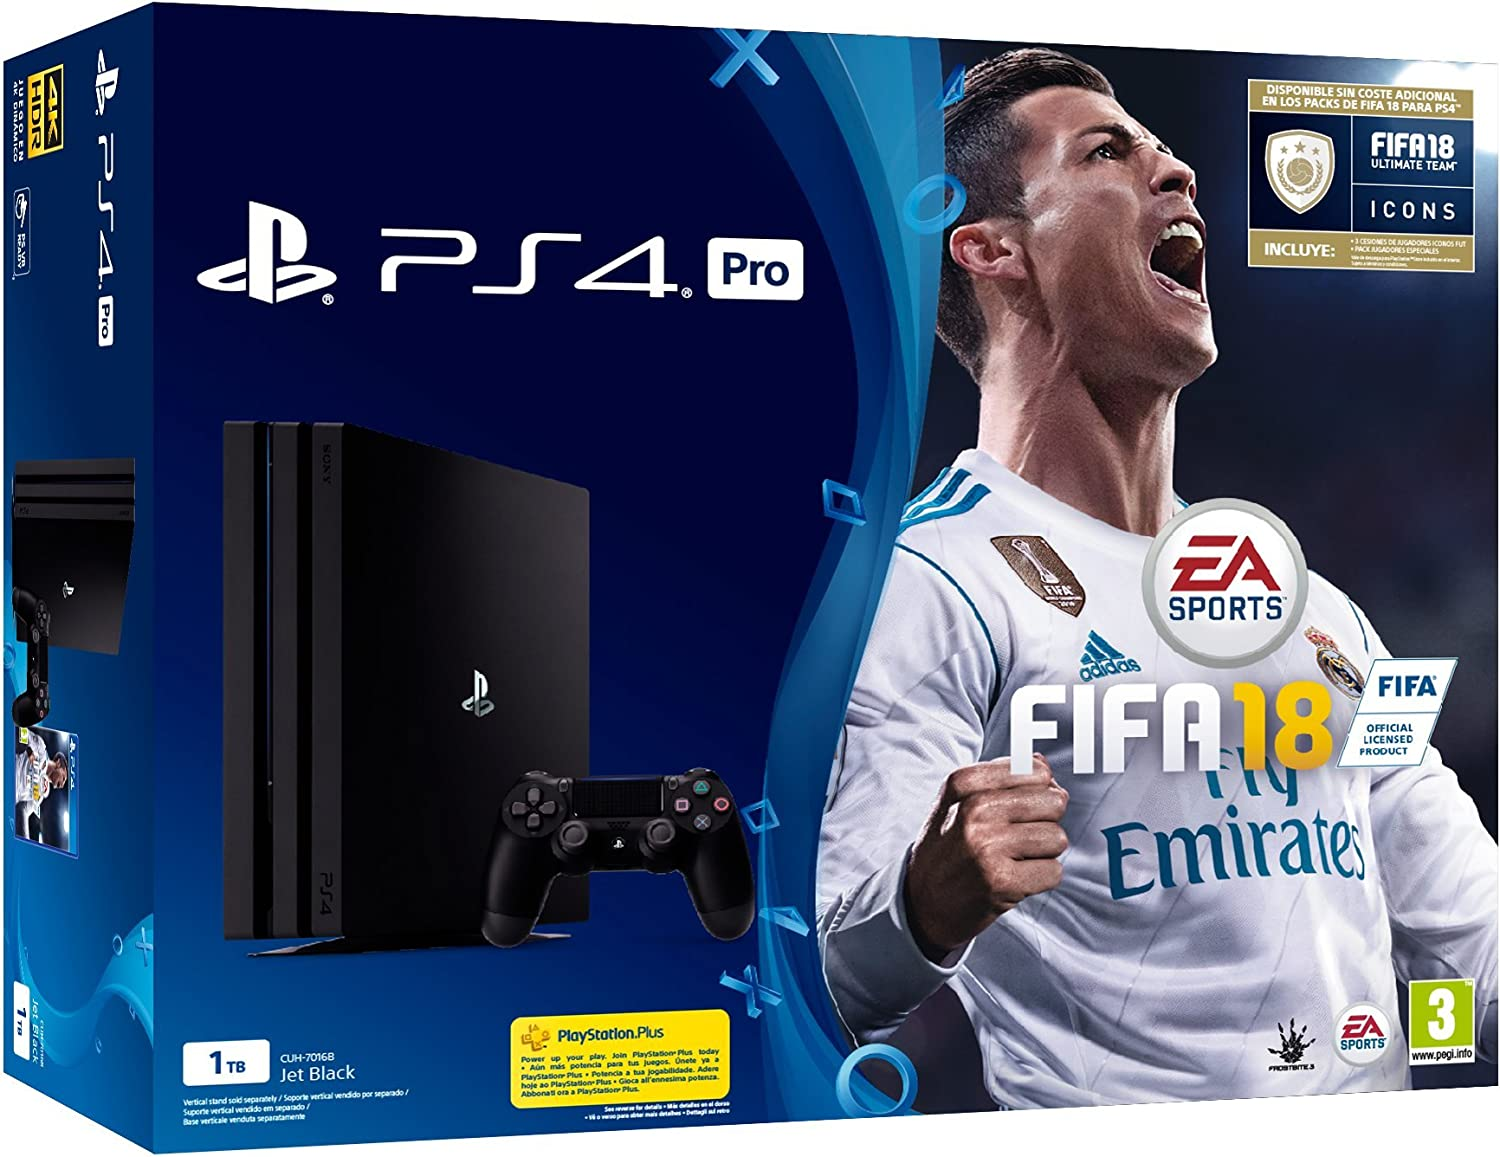 PlayStation 4 Pro (PS4) - Consola de 1 TB + FIFA 18: Amazon.es ...